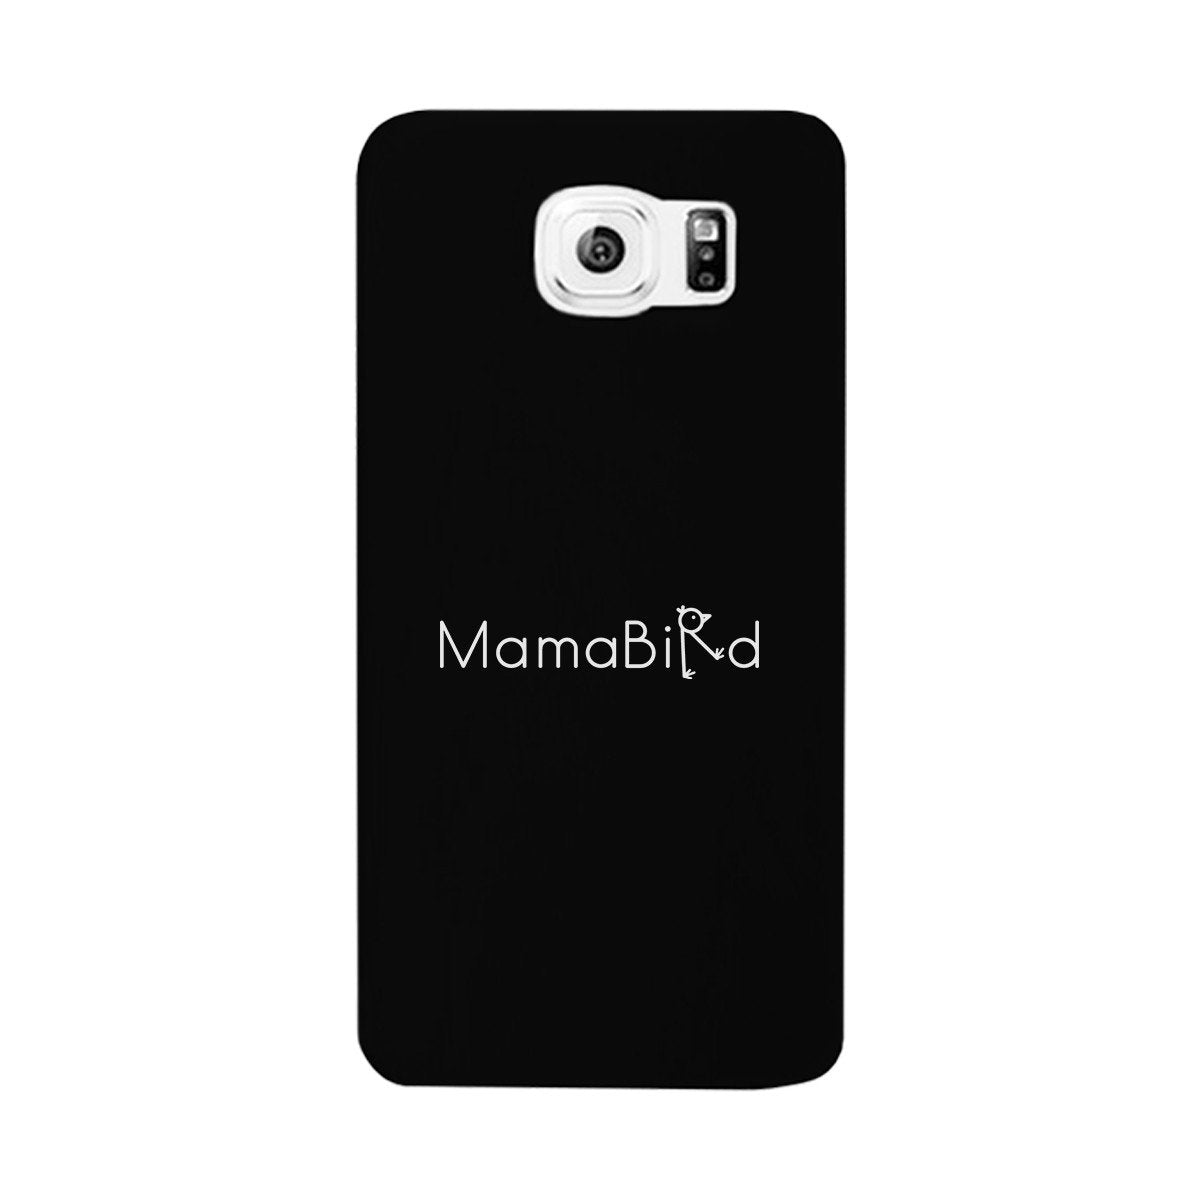 MamaBird Black Phone Case Cute Design Unique Gifts For New Moms